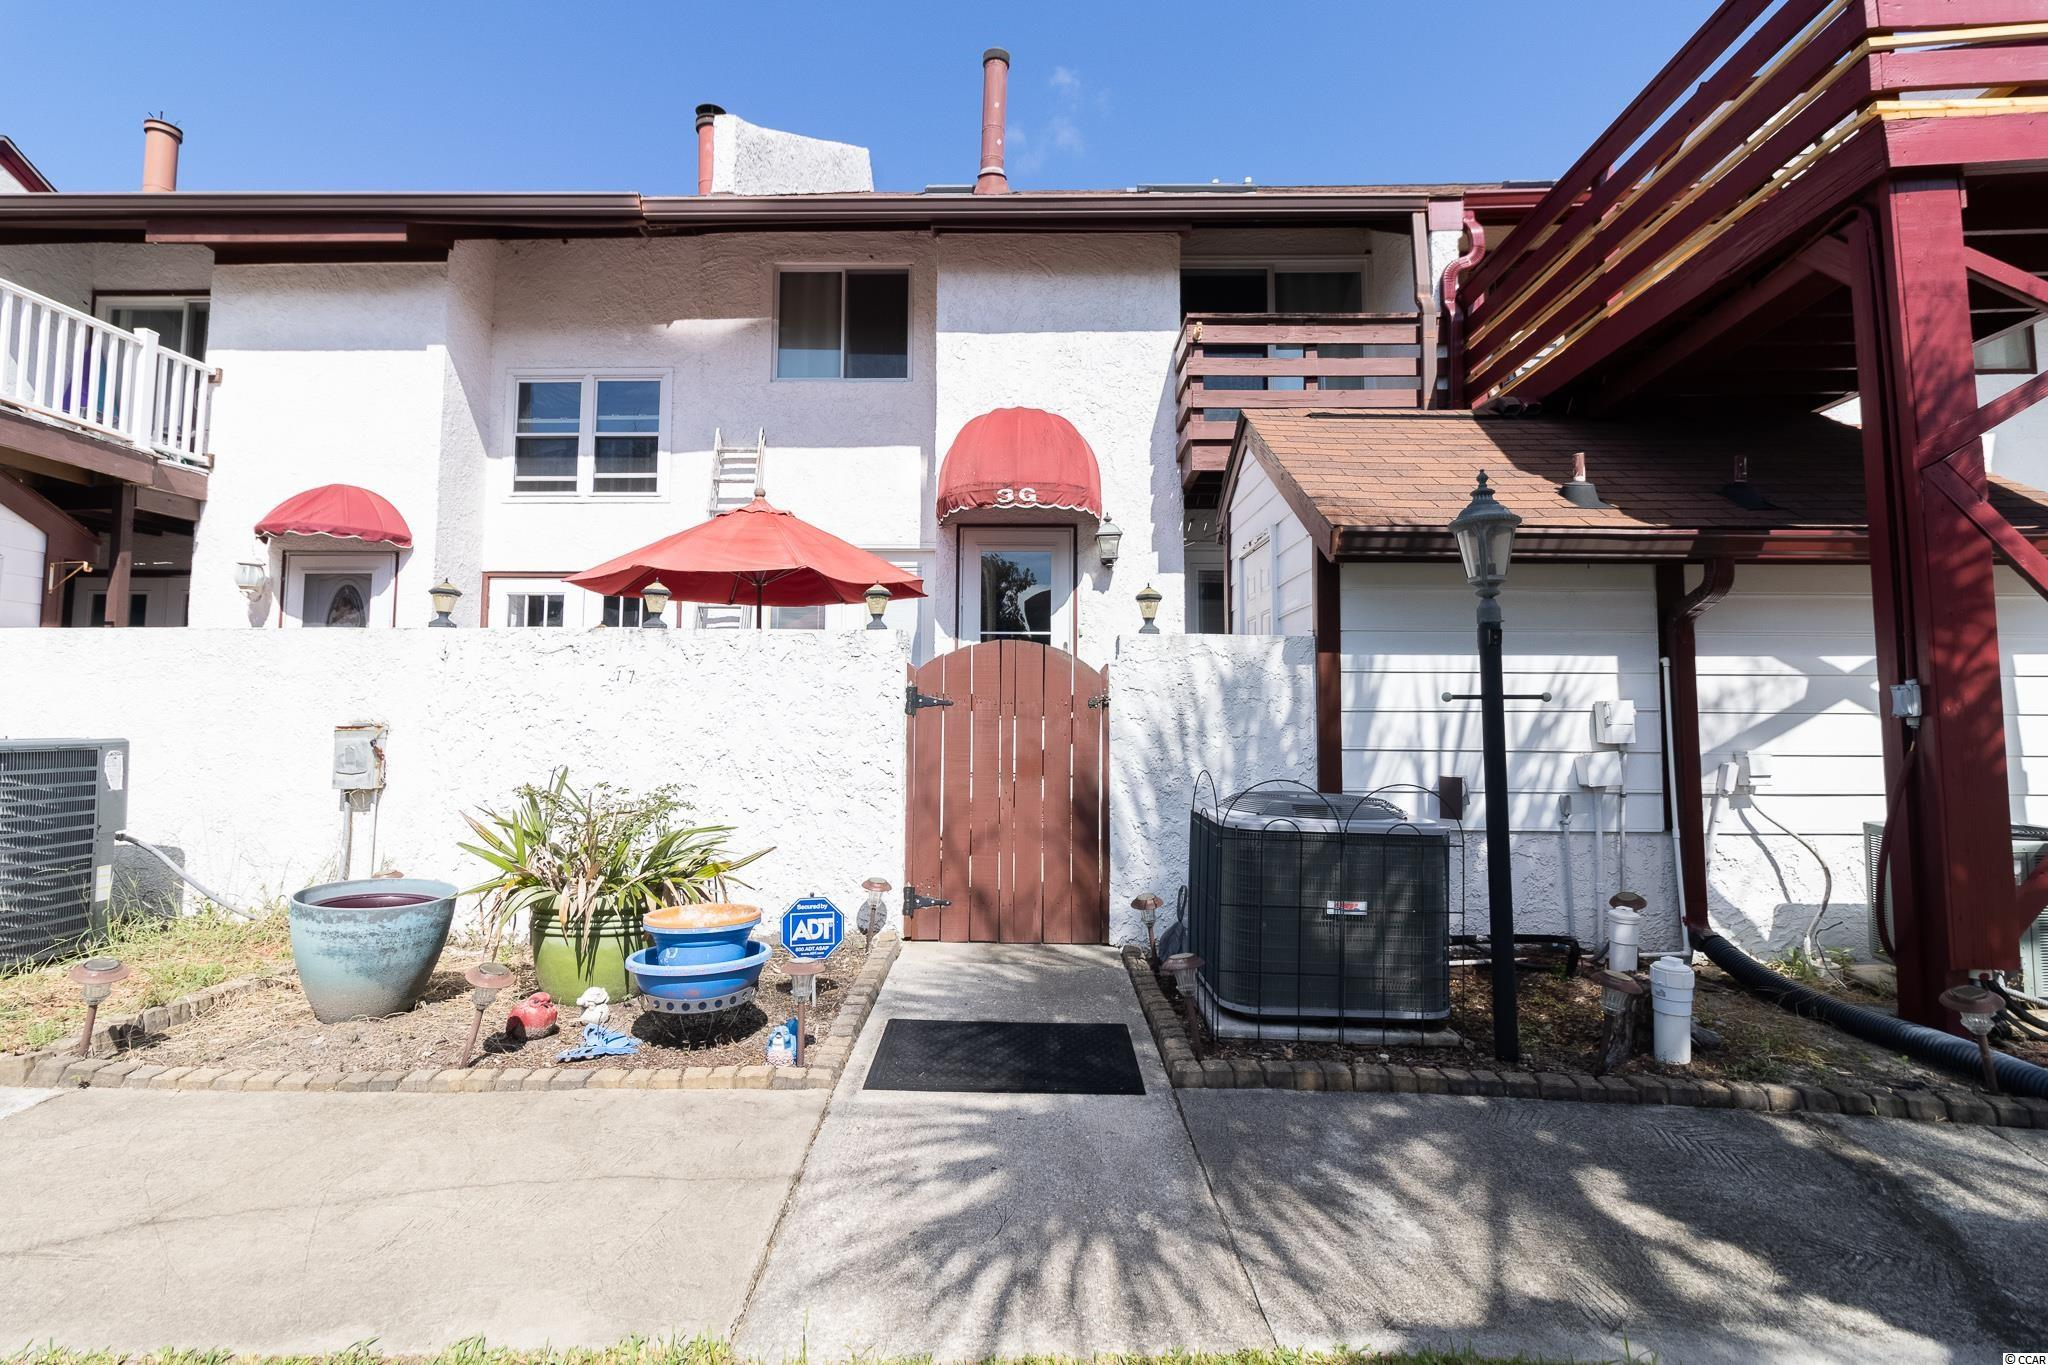 Don't miss out on this incredible opportunity! This beautiful 2 bedroom, 1.5 bathroom home is located WALKING DISTANCE TO THE BEACH with NO HOA and features a bright and spacious floor plan! The open living room features a warm fireplace and lots of natural light! The country kitchen features lovely white cabinetry, custom backsplash, granite counter tops, a breakfast bar, and stainless steel appliances plus a formal dining area! The comfortable master bedroom features high vaulted ceilings, a large walk-in closet, and access to a private balcony! This amazing home also features a large storage building perfect for any extra storage you may need! You will enjoy the spectacular weather and the relaxing patio perfect for grilling out and entertaining! Being in such a great location, not only are you just 1 minute to the beach, but you are also only minutes to Broadway at the Beach, Market Commons, delicious restaurants, shops, and so much more! Book your showing today!